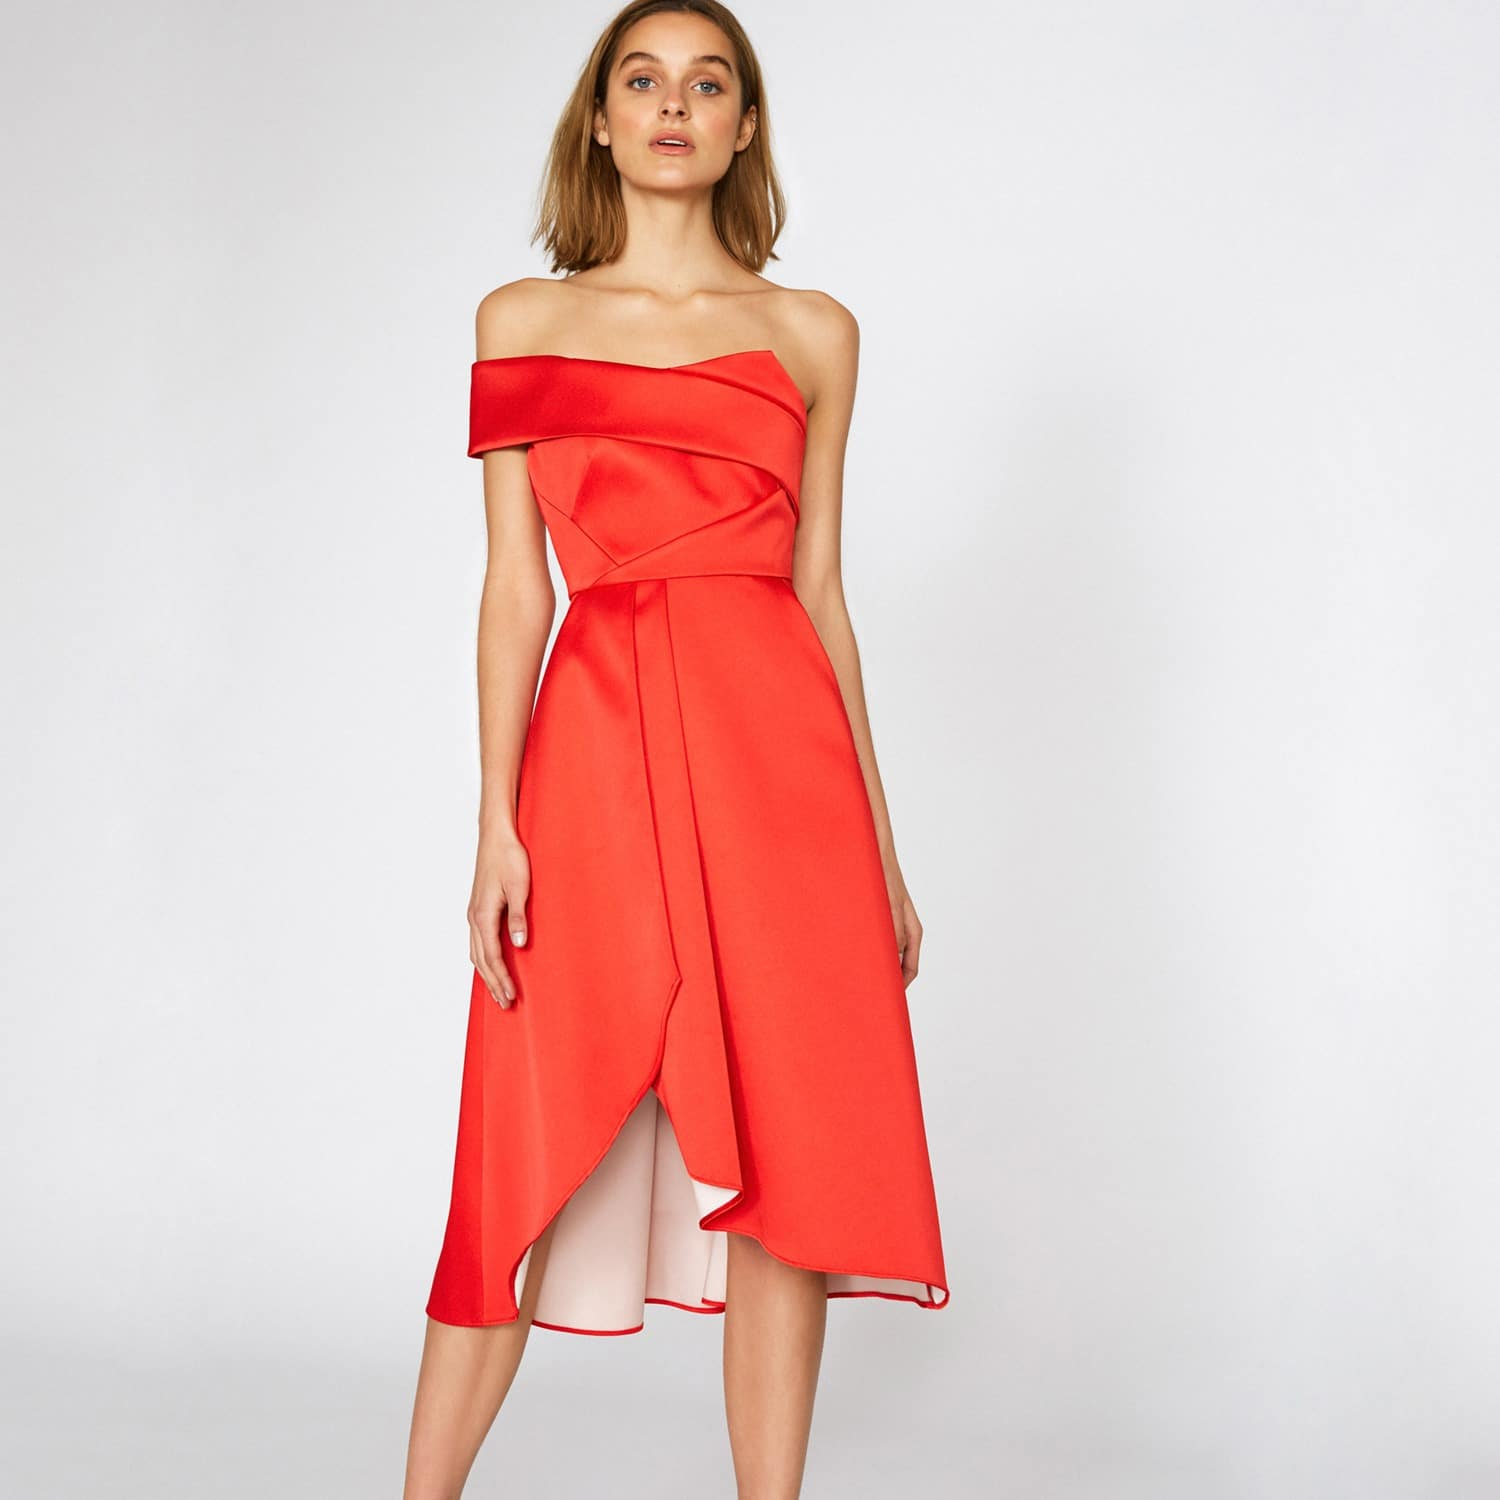 OUTLINE The Victoria Red Dress